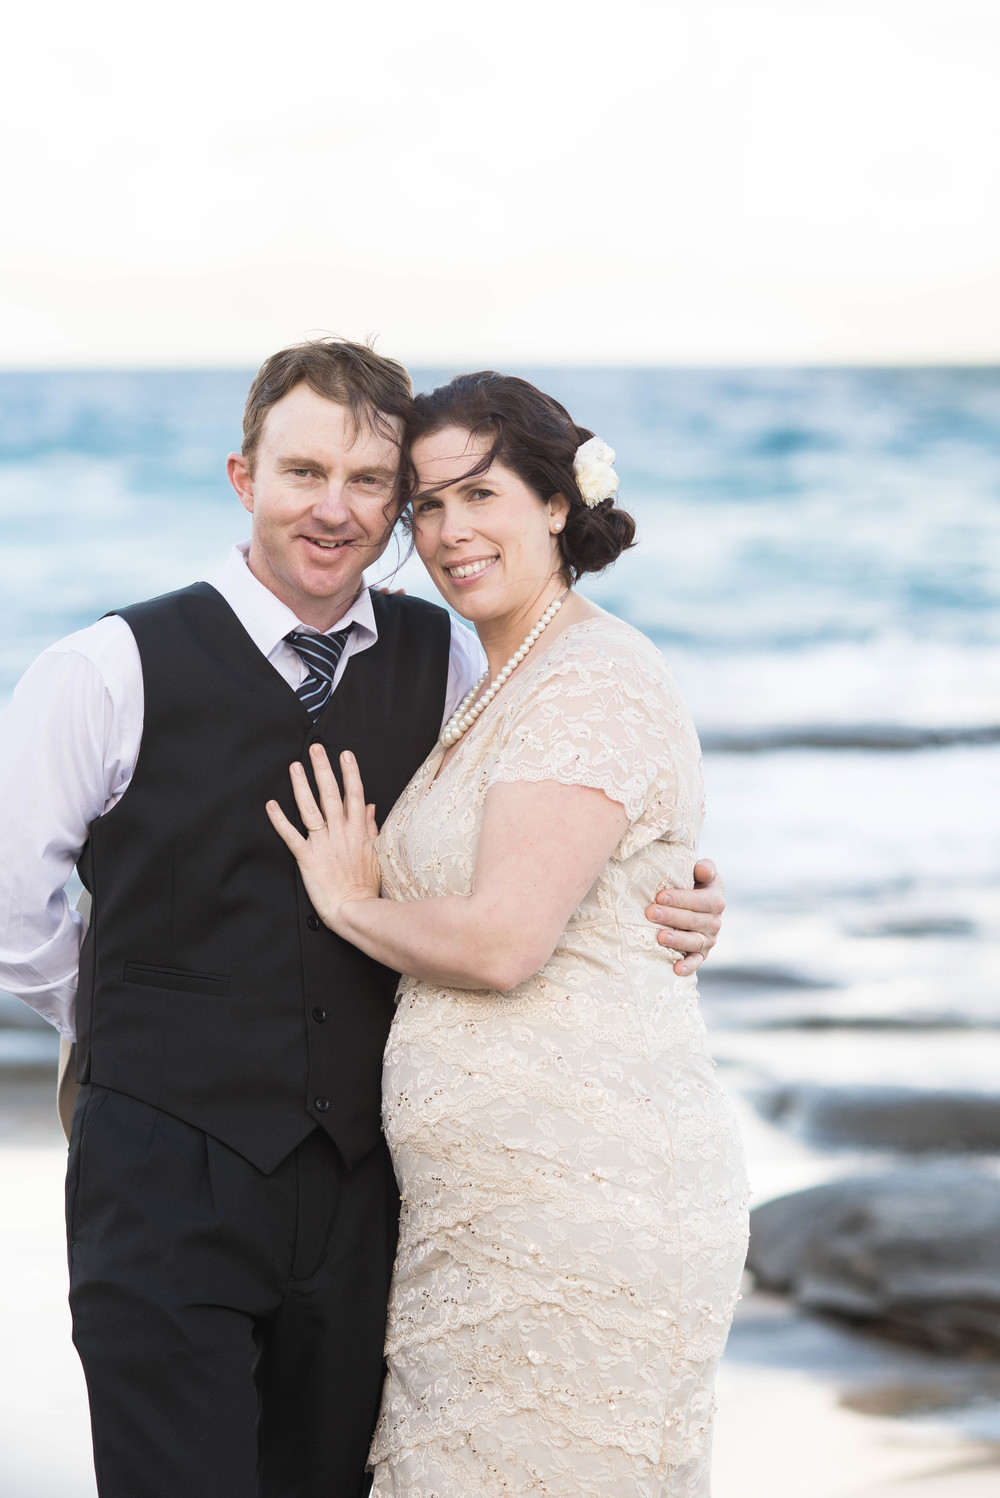 Point_Cartwright_Vow_Renewal_Sunshine_Coast_Tafline_Hoey_Photography-27.jpg